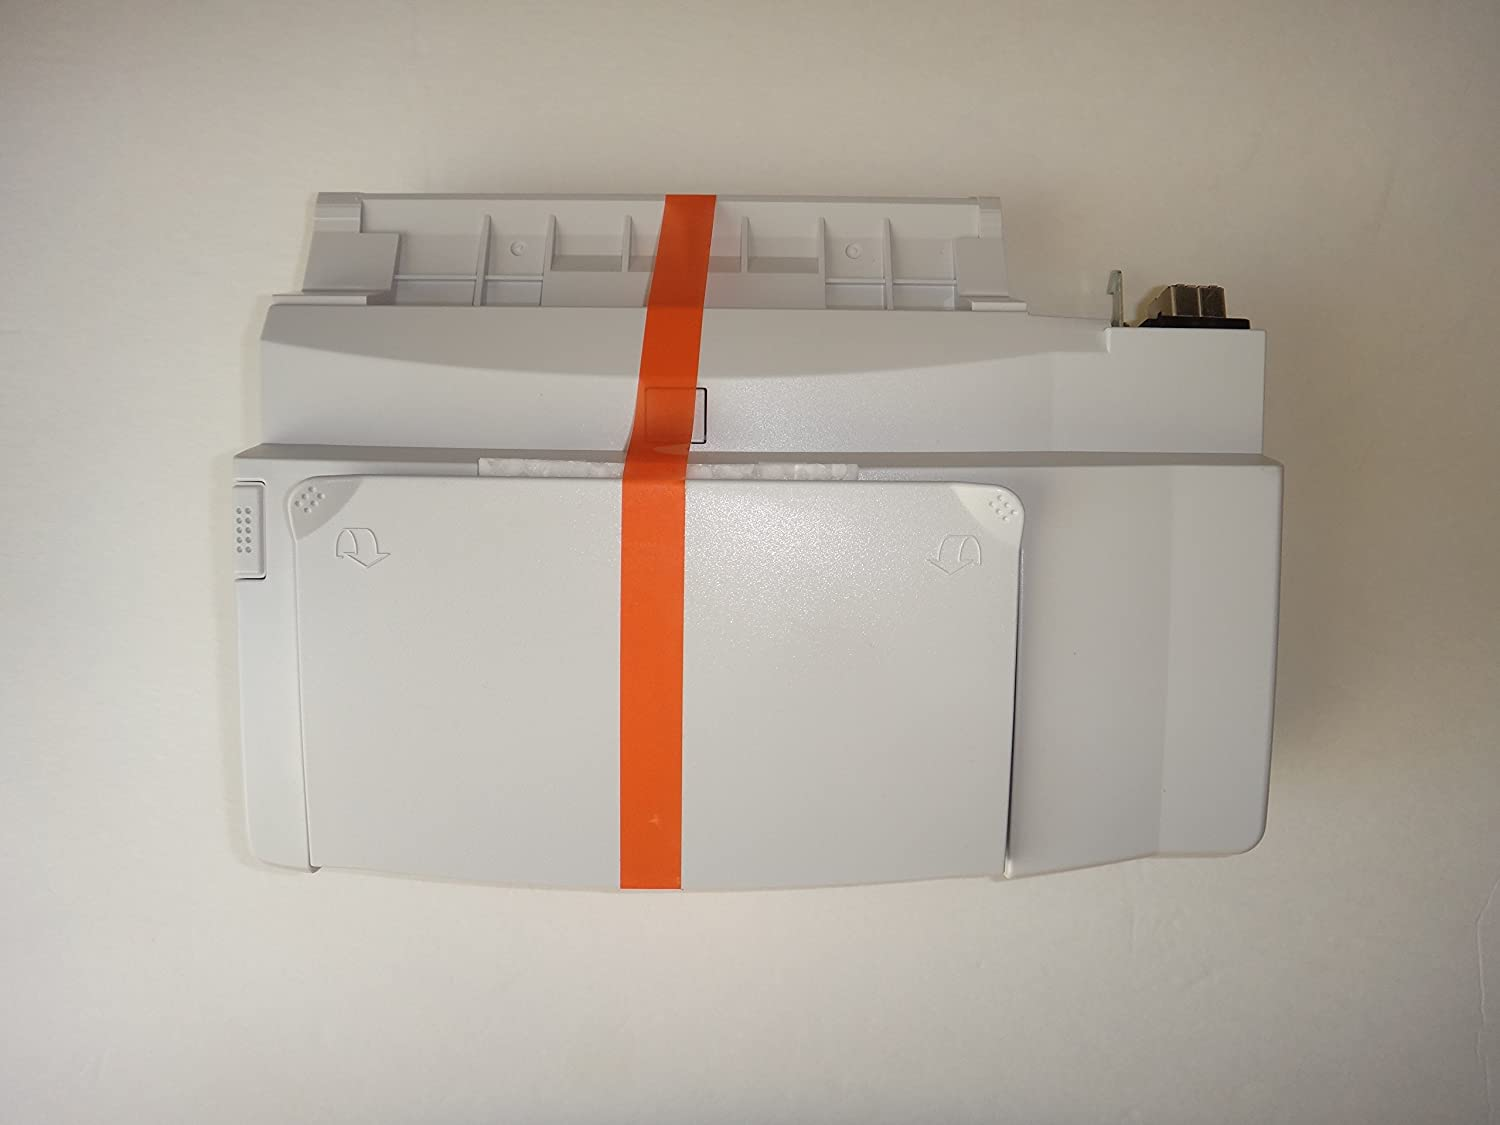 Hewlett-Packard (Hp) Laser Jet Q2438B Envelope Feeder